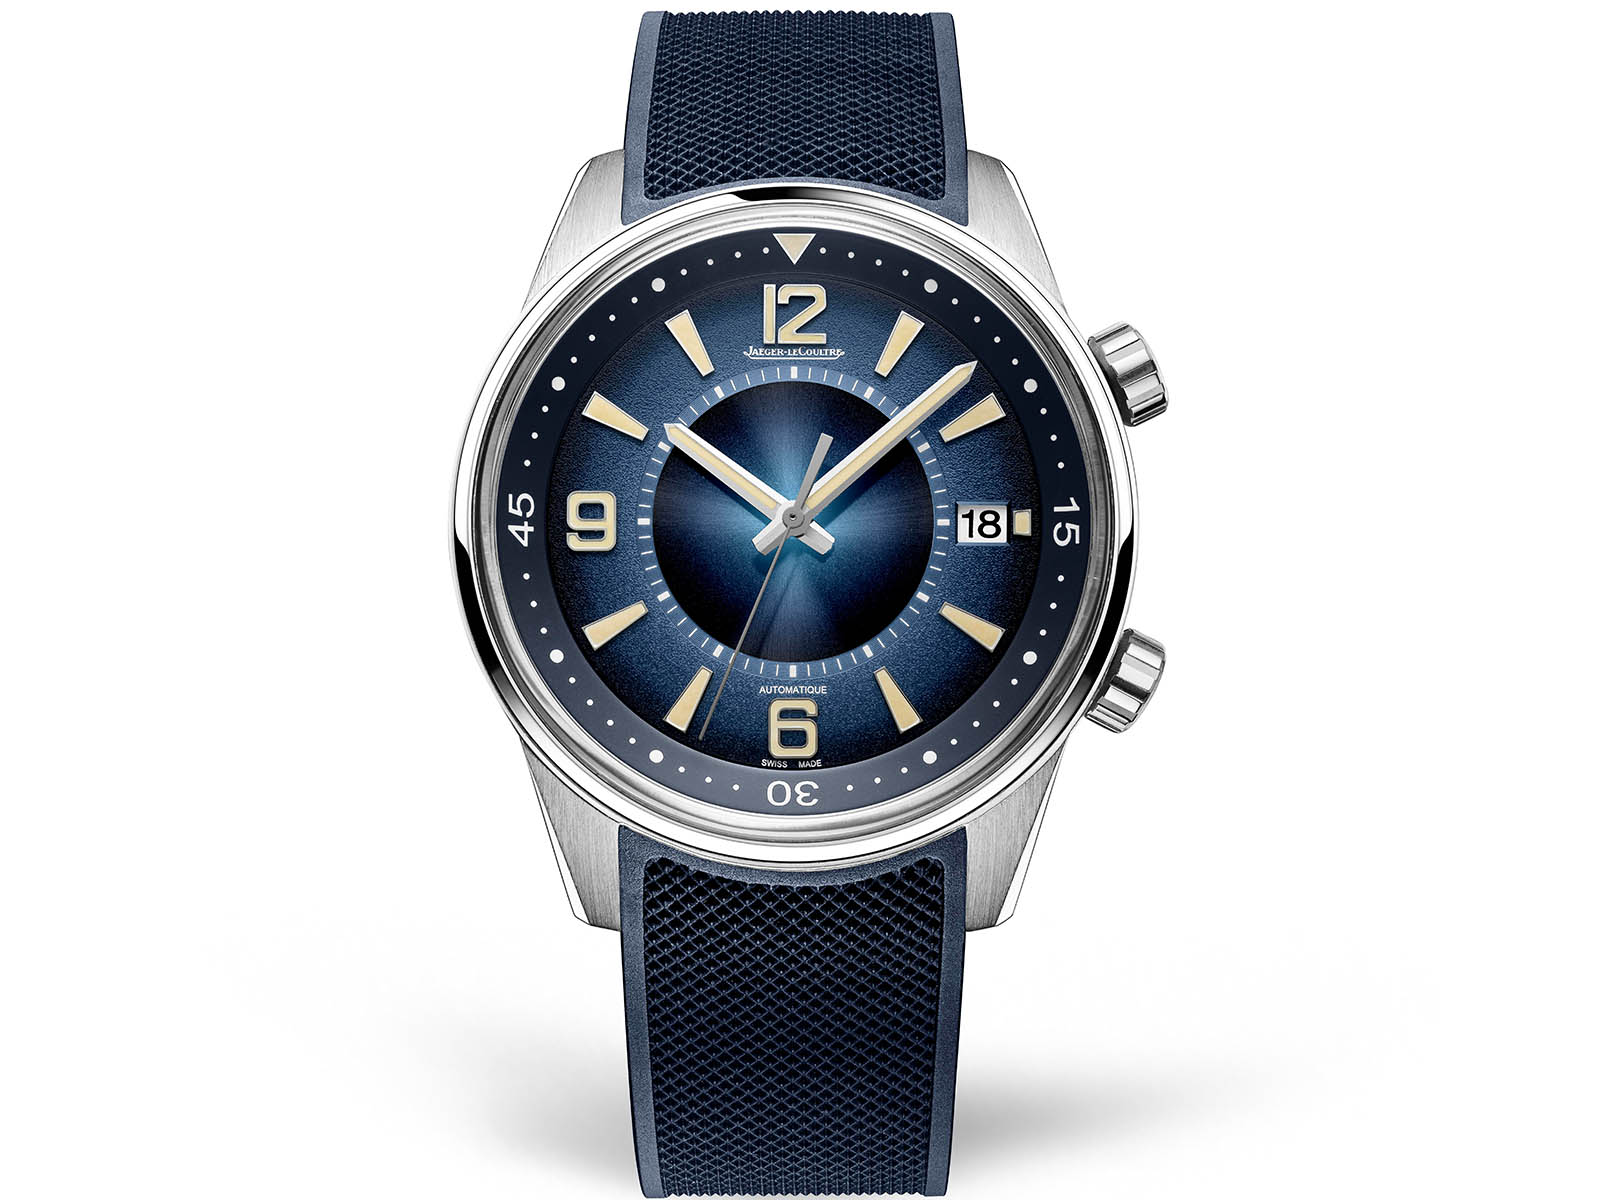 q9068681-jaeger-lecoultre-polaris-date-limited-edition-4.jpg